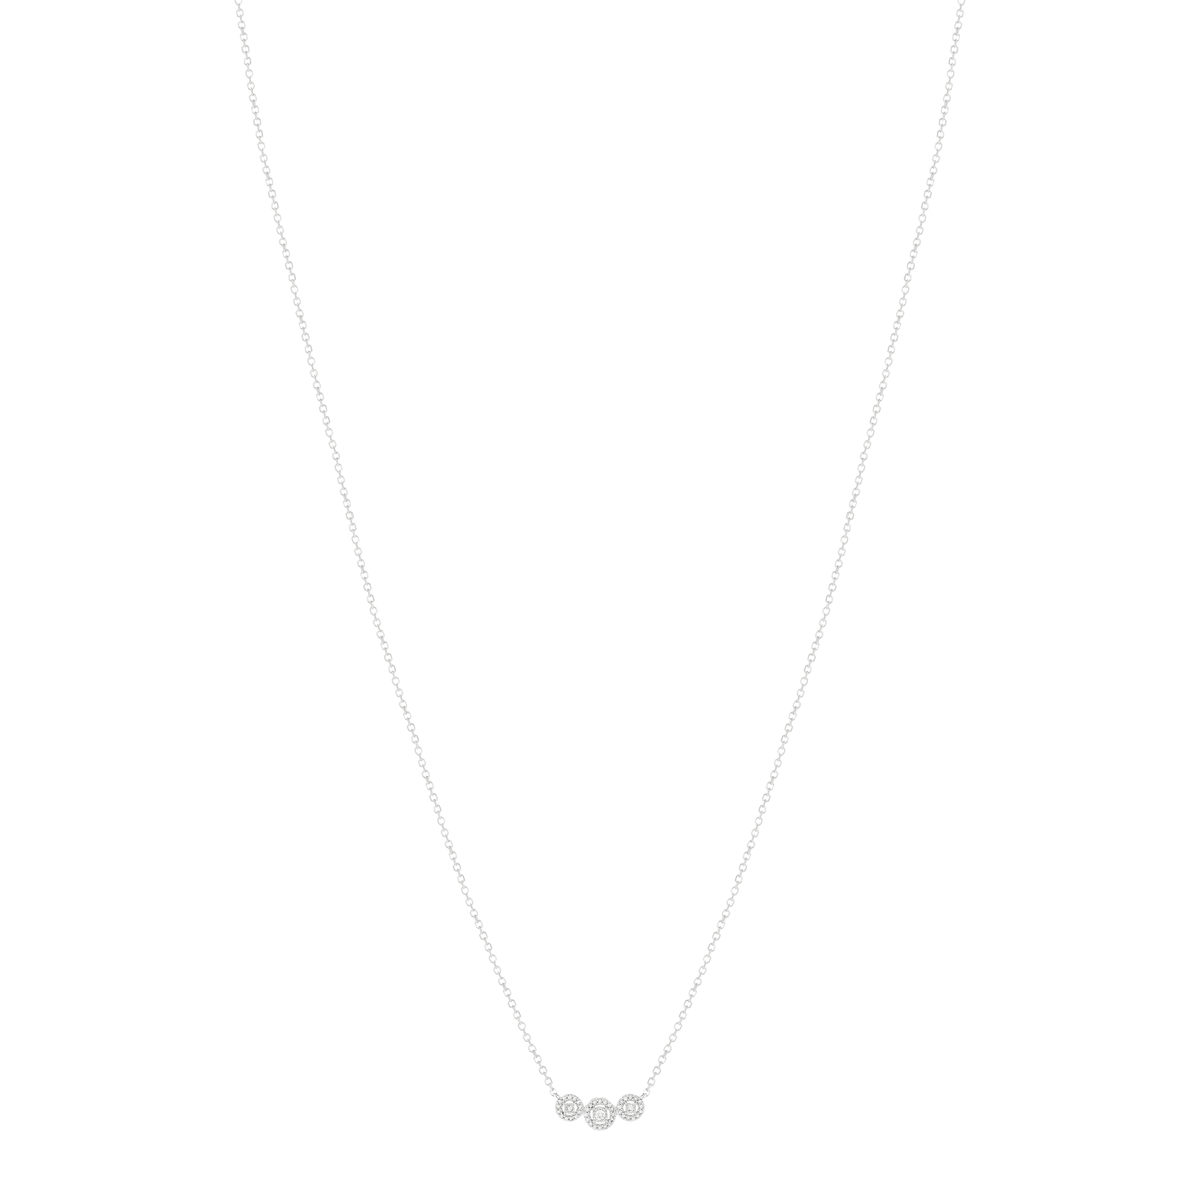 Collier MATY Or 750 blanc diamants 40 cm - vue V1